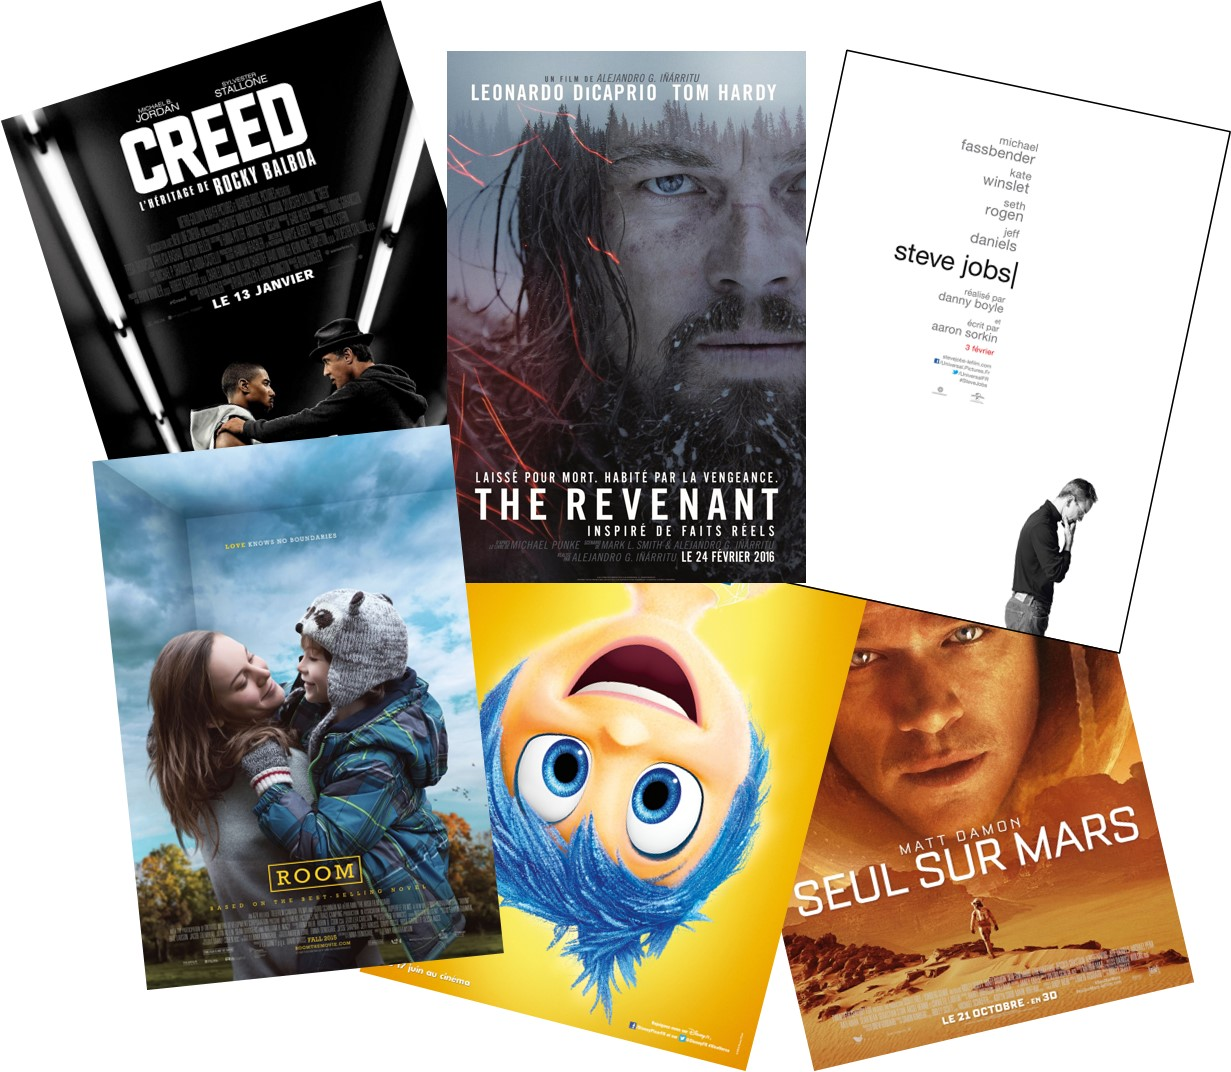 GOLDEN GLOBES 2016 - Palmarès Films CREED THE REVENANT ROOM STEVE JOBS INSIDE OUT VICE-VERSA